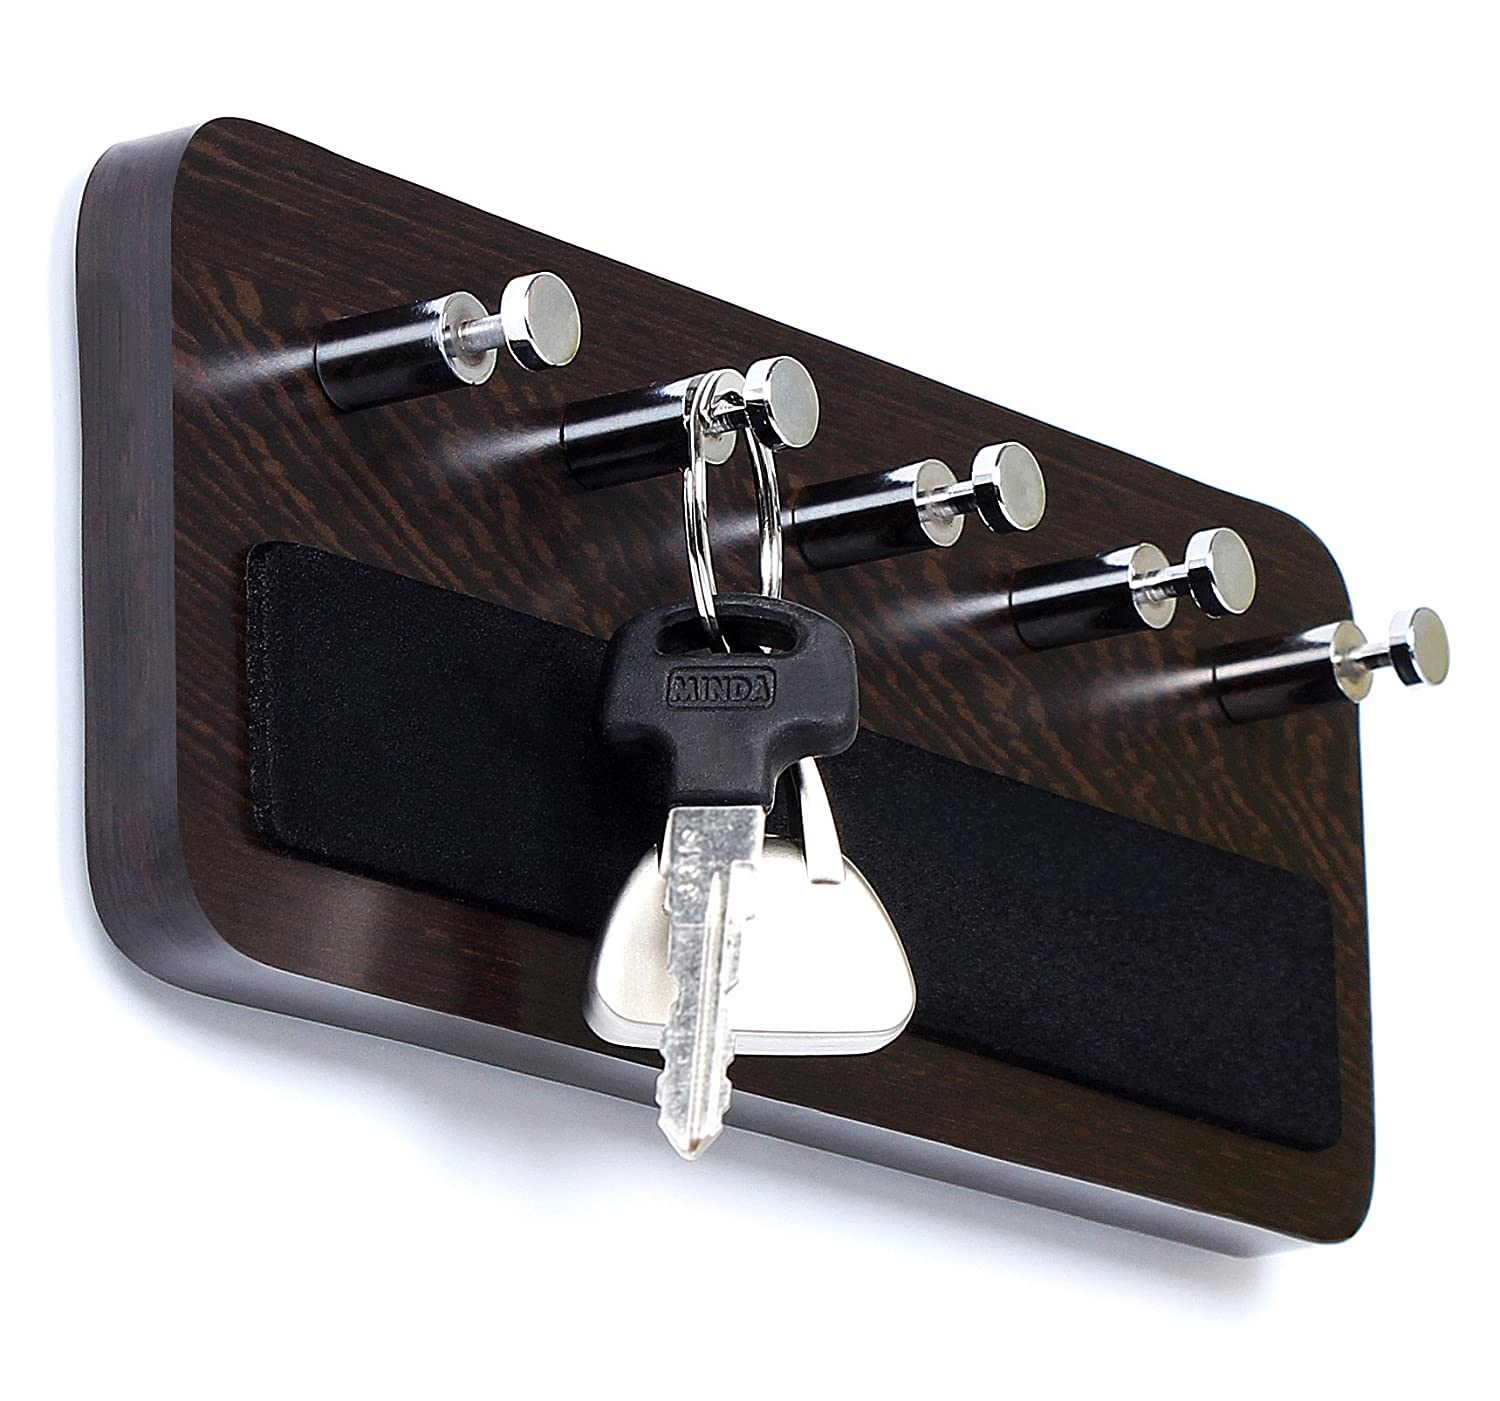 Regis Key Hold - Wall Mounted Key Holder/Key Rack Hooks - Skywood Wenge Big